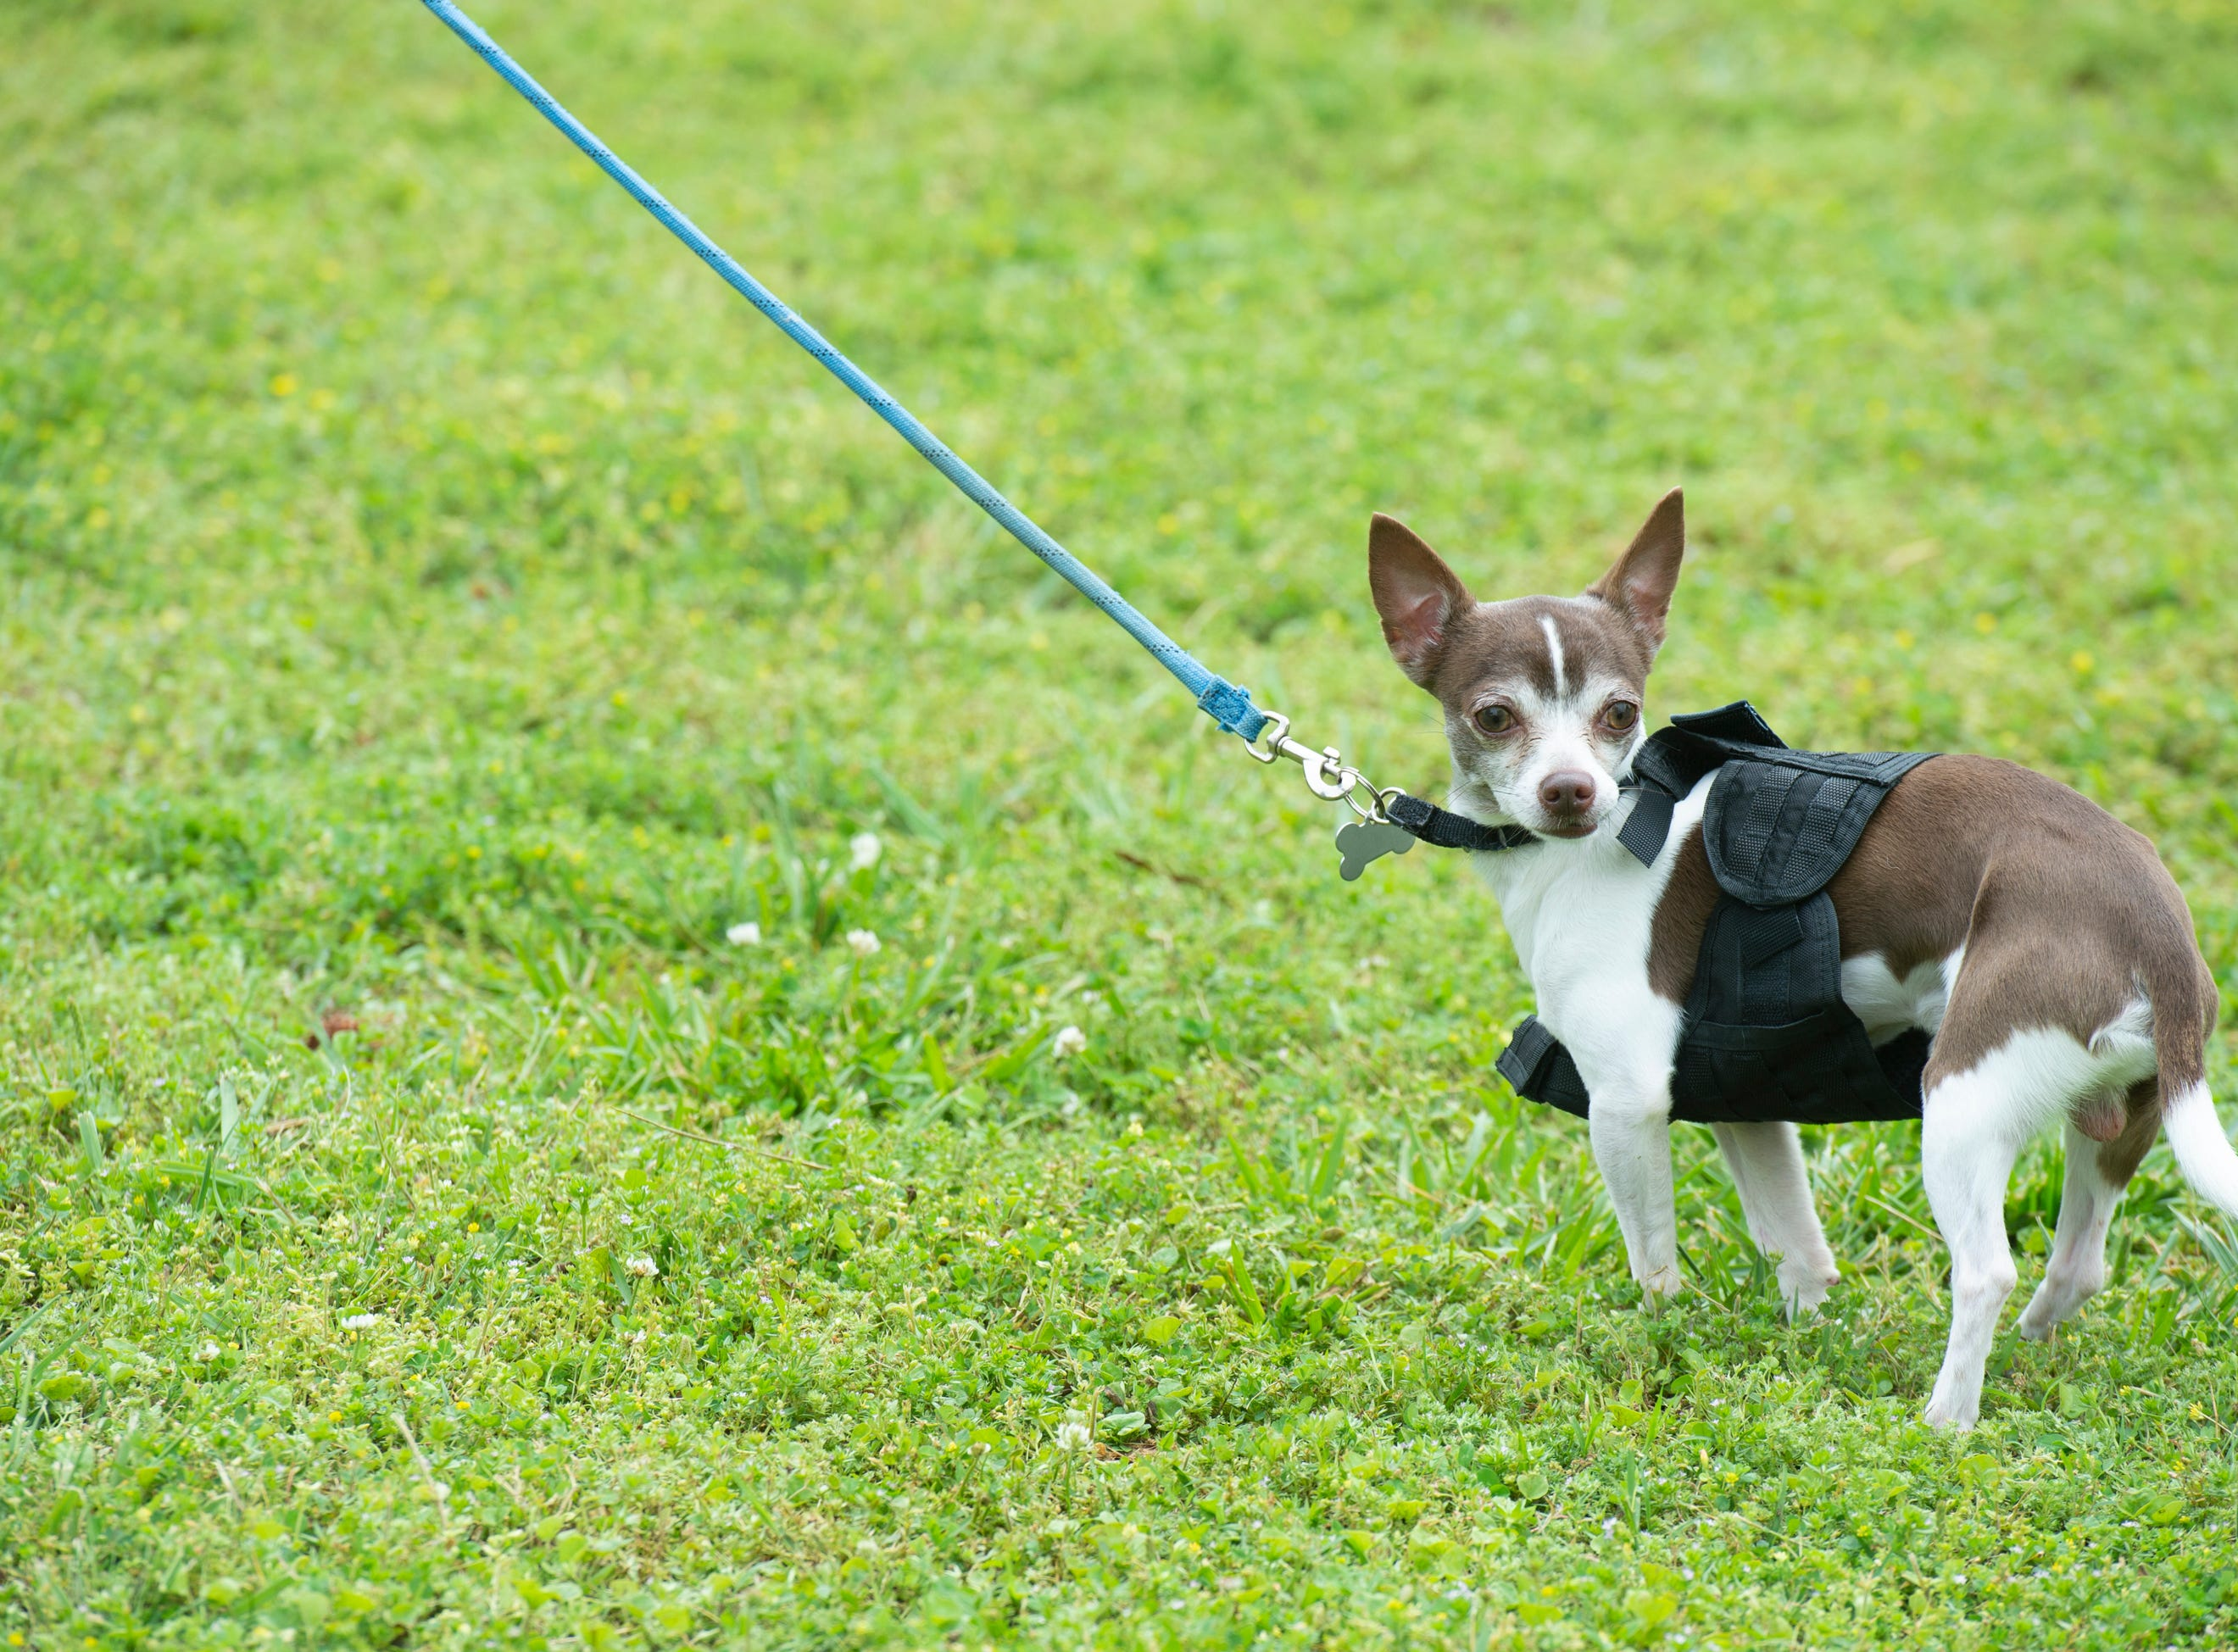 Carmen Hall and her dog Oreo compete in the smallest dog contest at Paws for a Cause held at Simpsonville City Park Saturday, April 13, 2019. The event was a fundraiser for Concerned Citizens for Animals. Oreo came in second place.